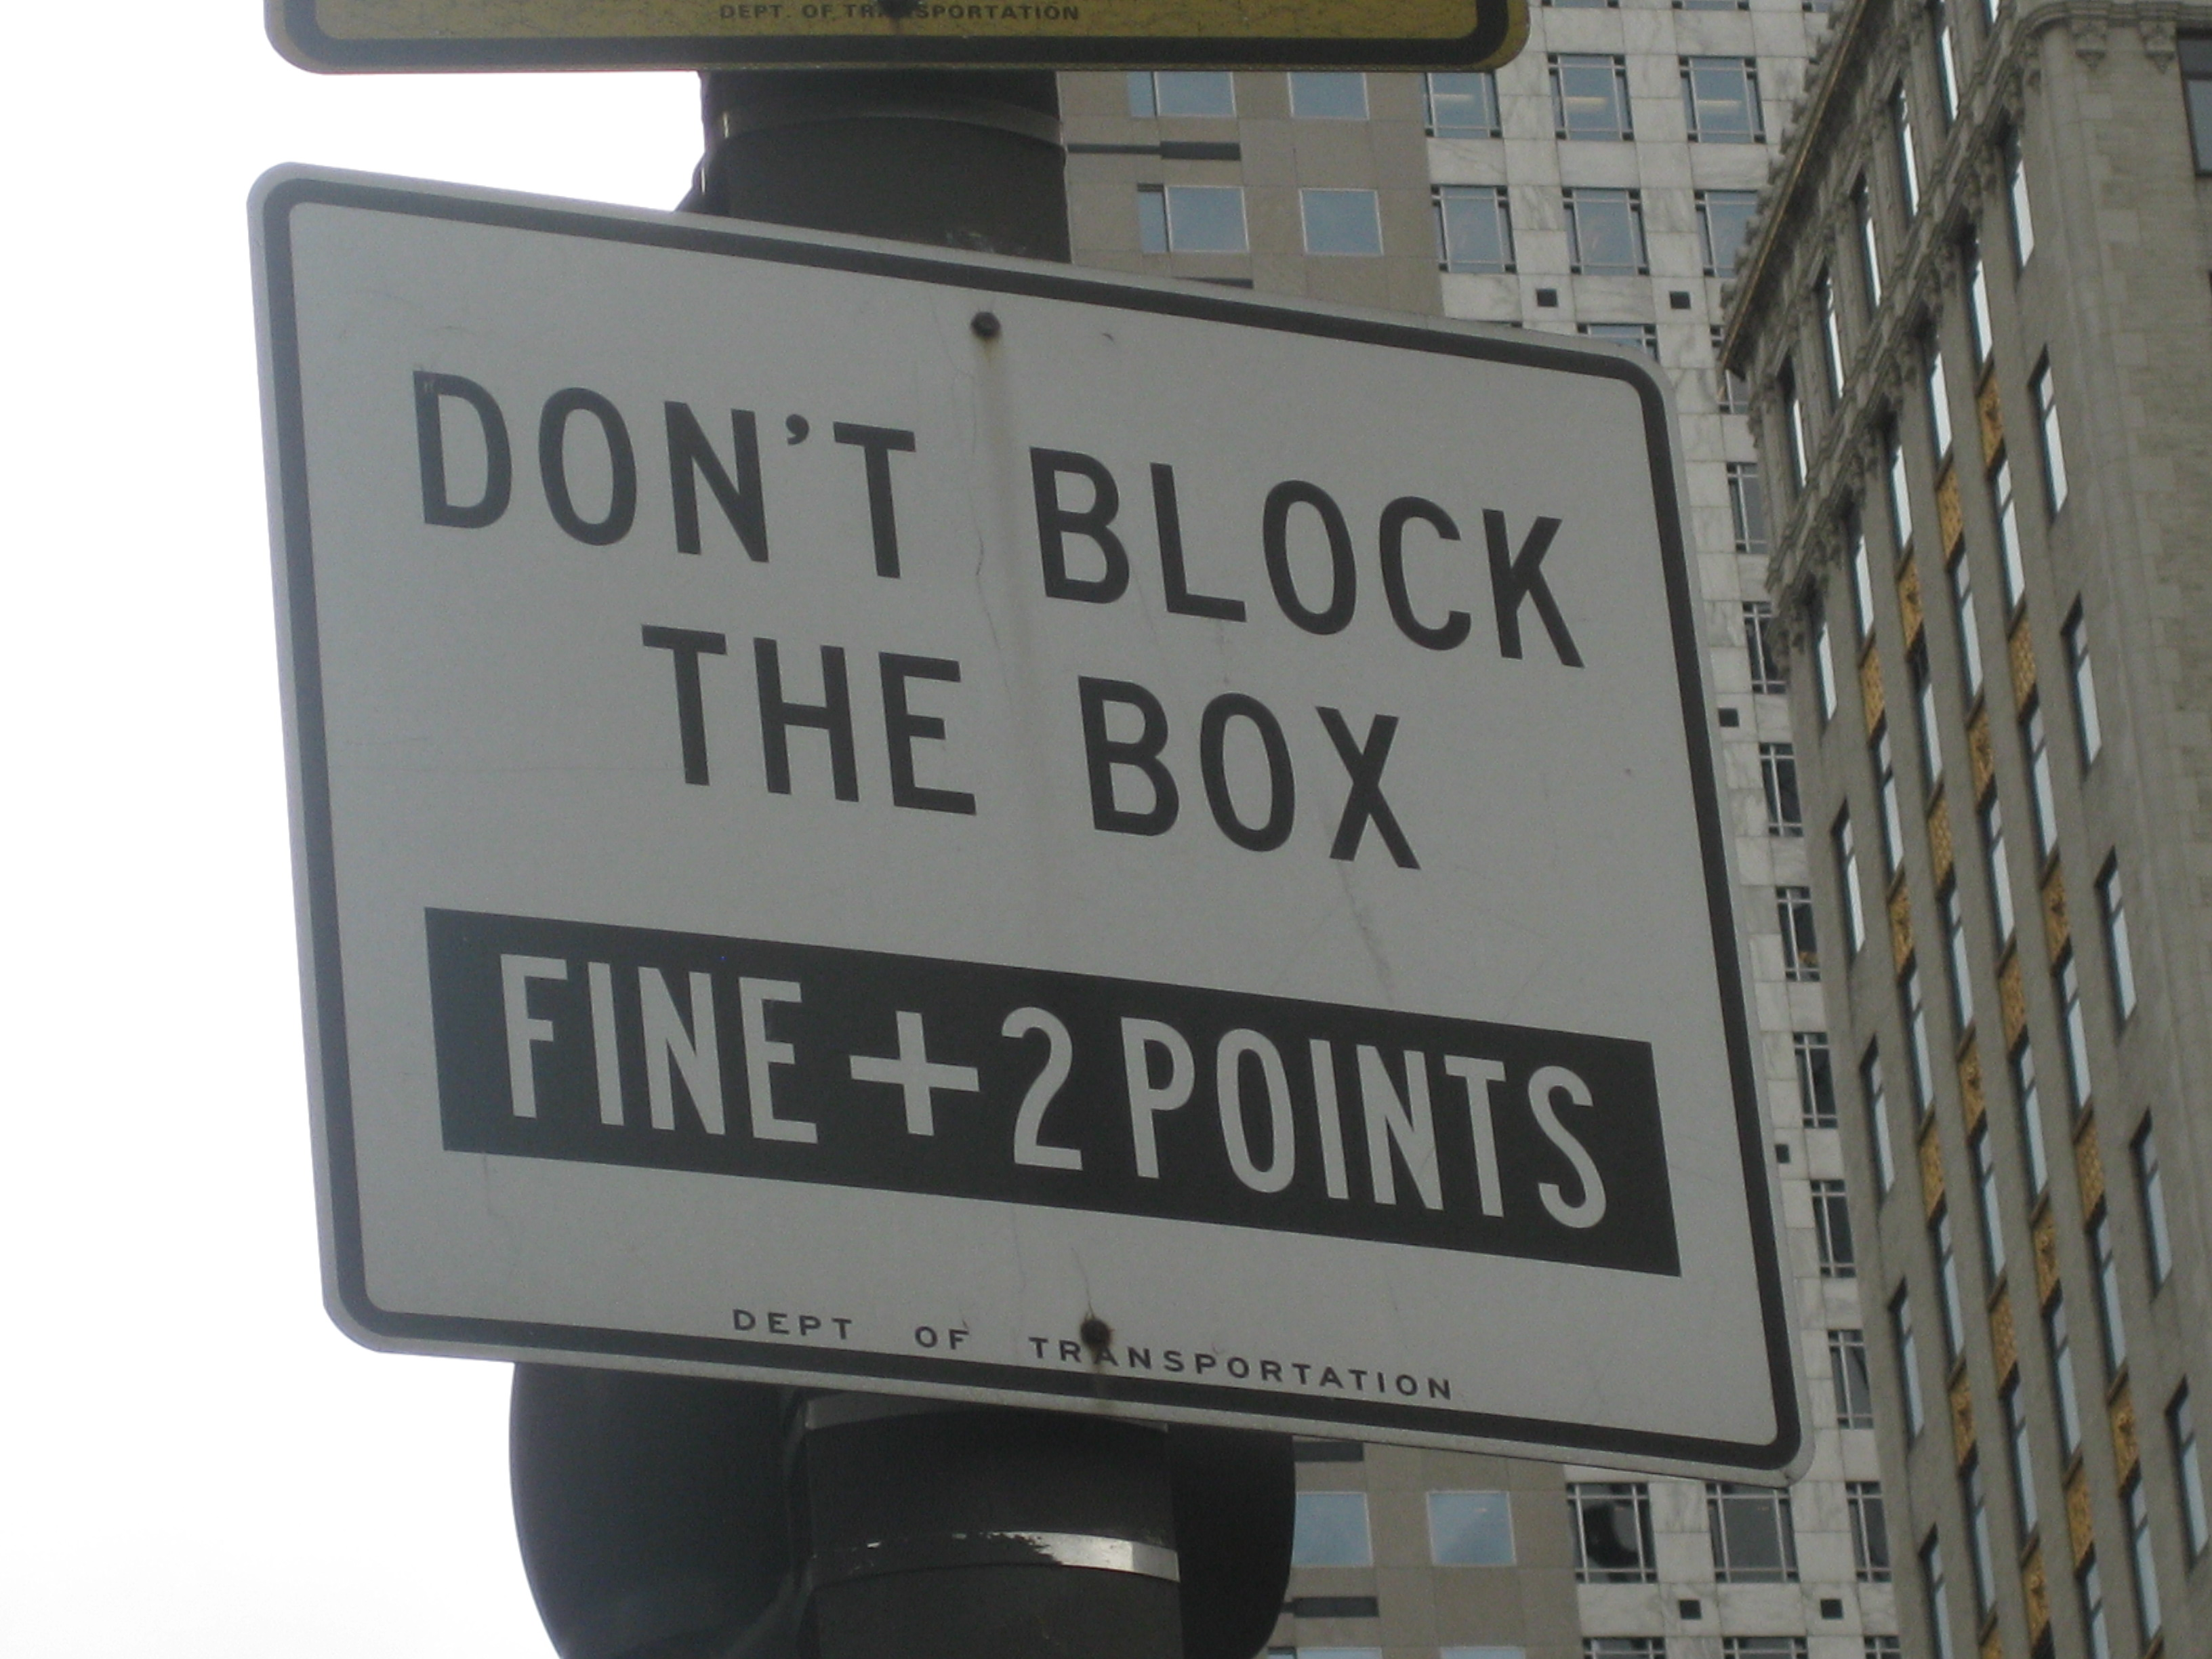 Blocking The Box aka Gridlocking No Longer A Moving Violation In